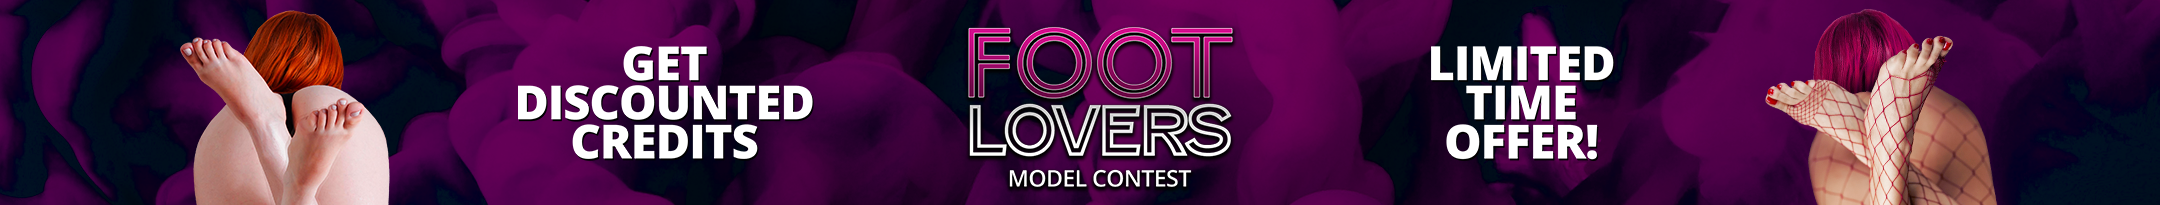 Foot Lovers Discount Promo